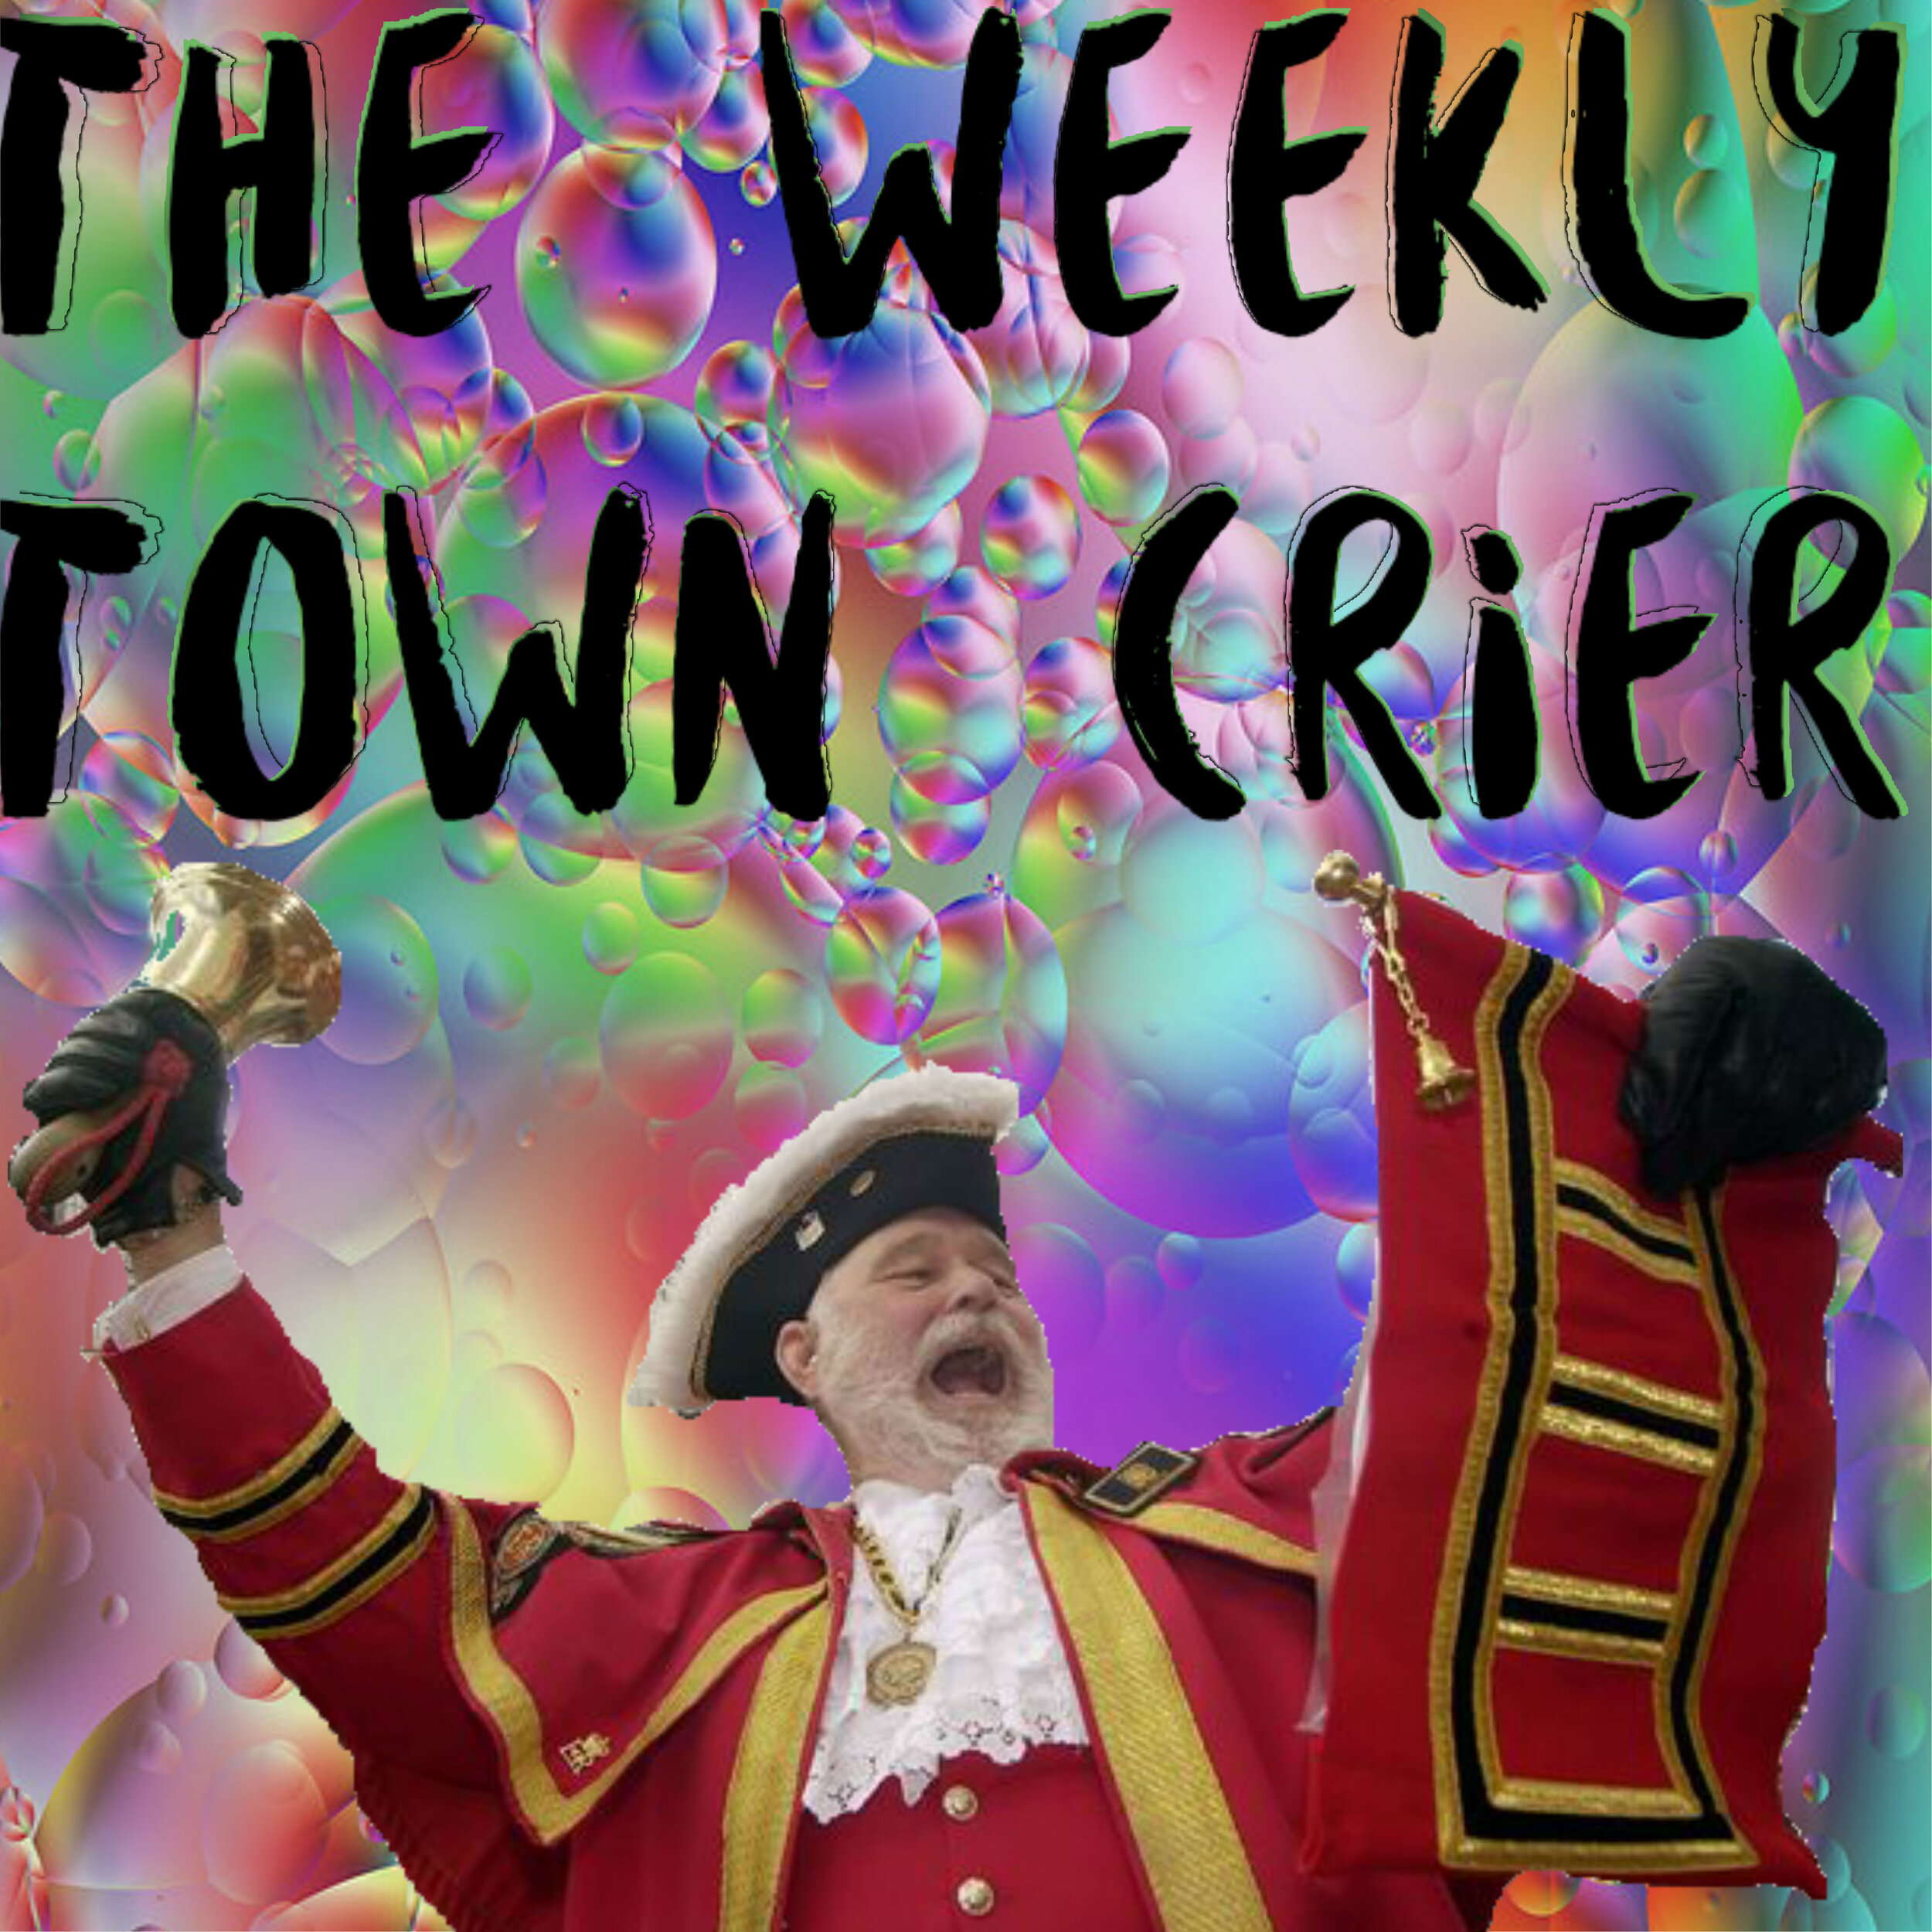 The Weekly Town Crier.jpg